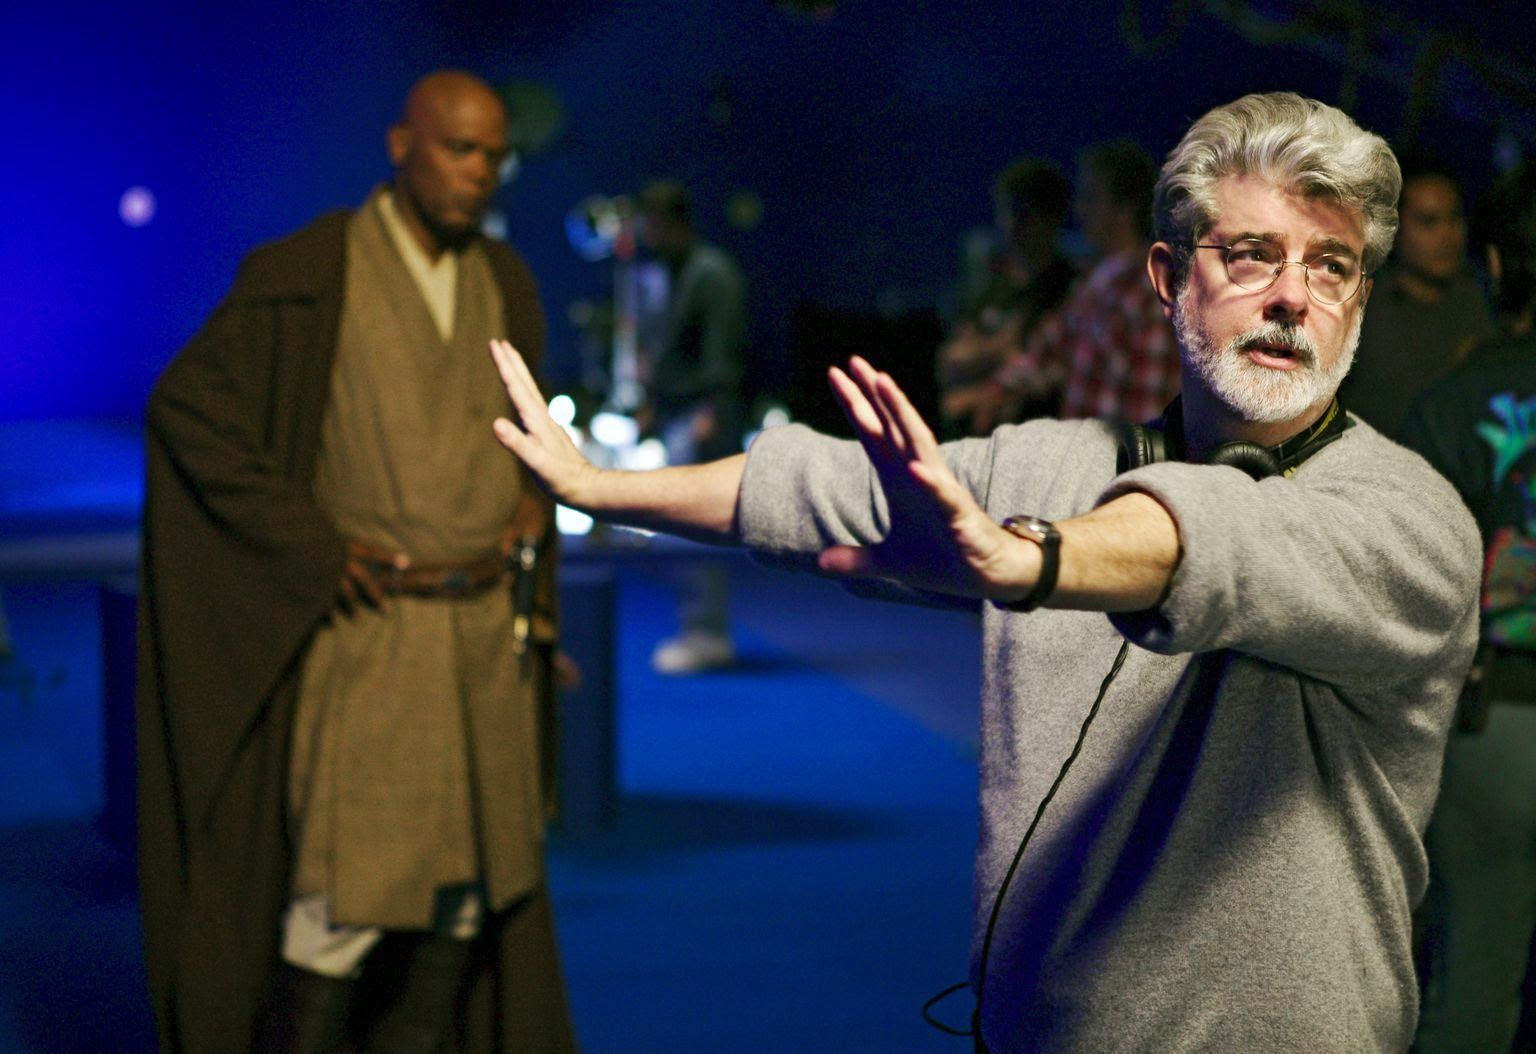 GEORGE LUCAS TO REMAKE PHANTOM MENACE